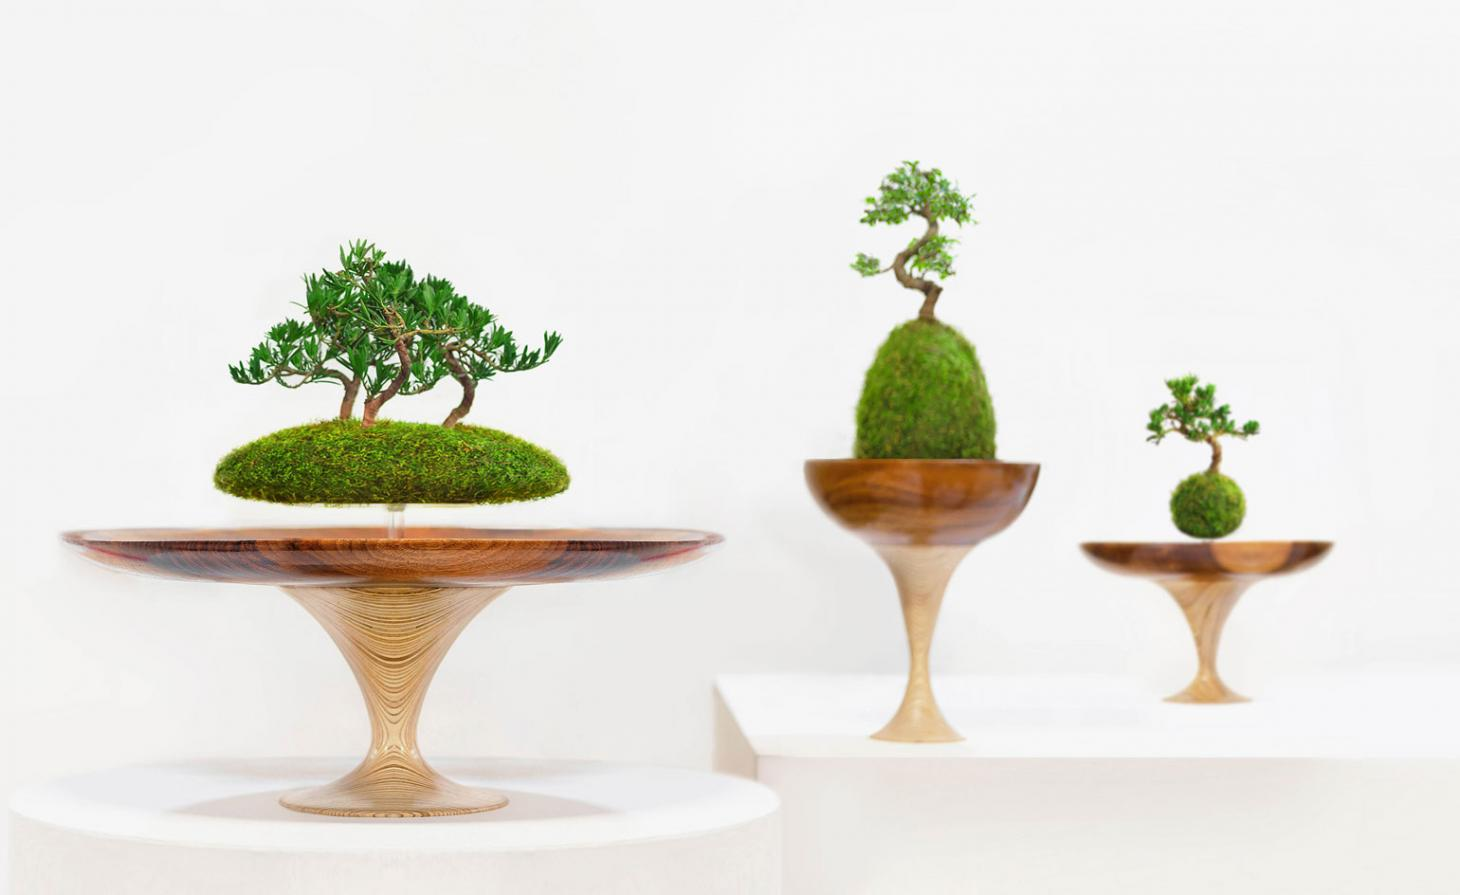 Plant pots in wooden bases